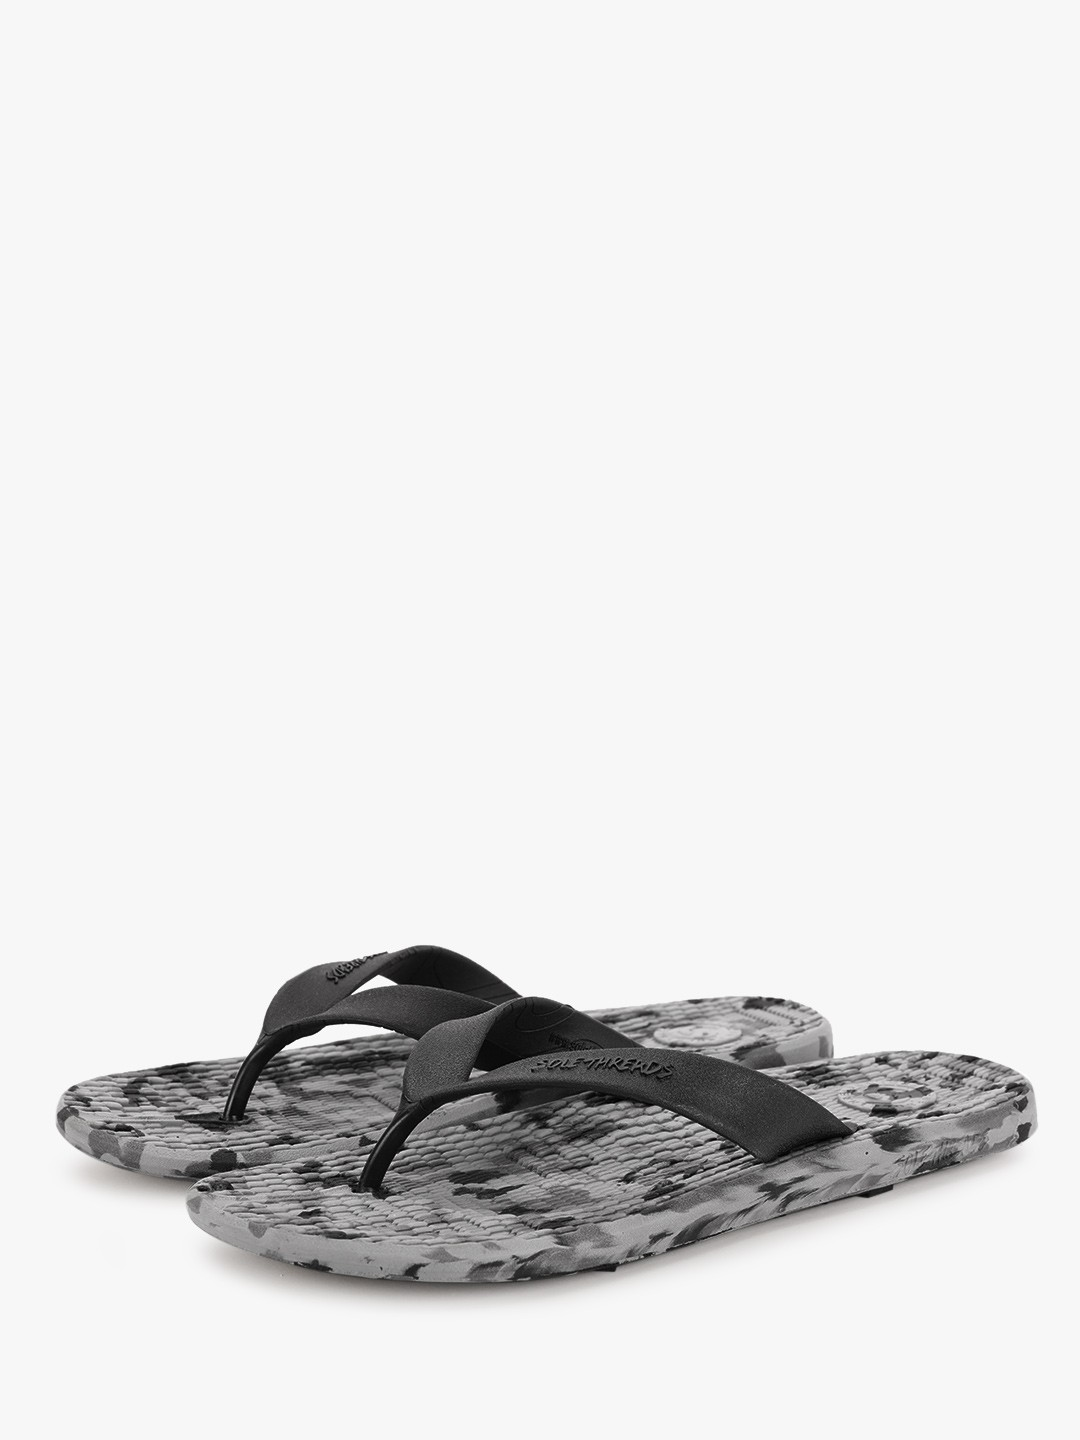 Sole Threads Grey Flip Flops With Textured Footbed 1